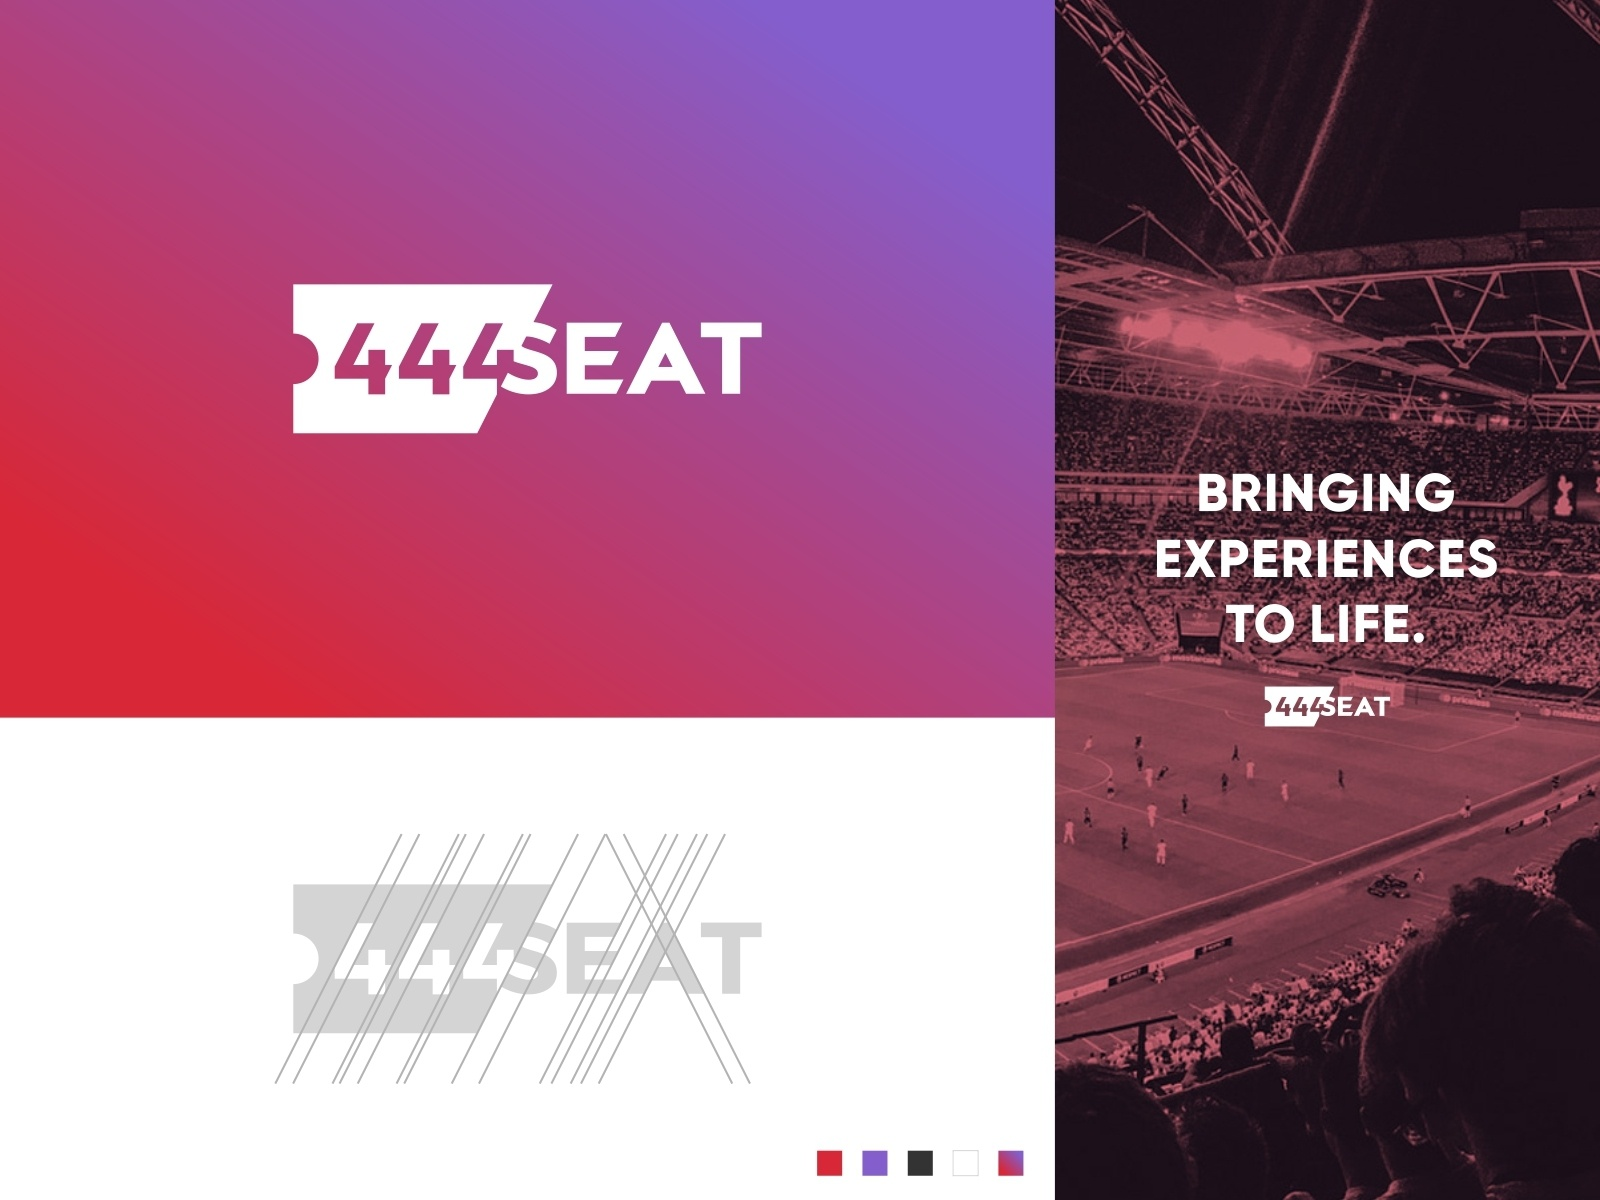 444 SEAT Logo - Unused sporting event sports illustration creation consistent clean simple gradient angled angle negative space branding logo wordmark agency ticket 444seat seat 444